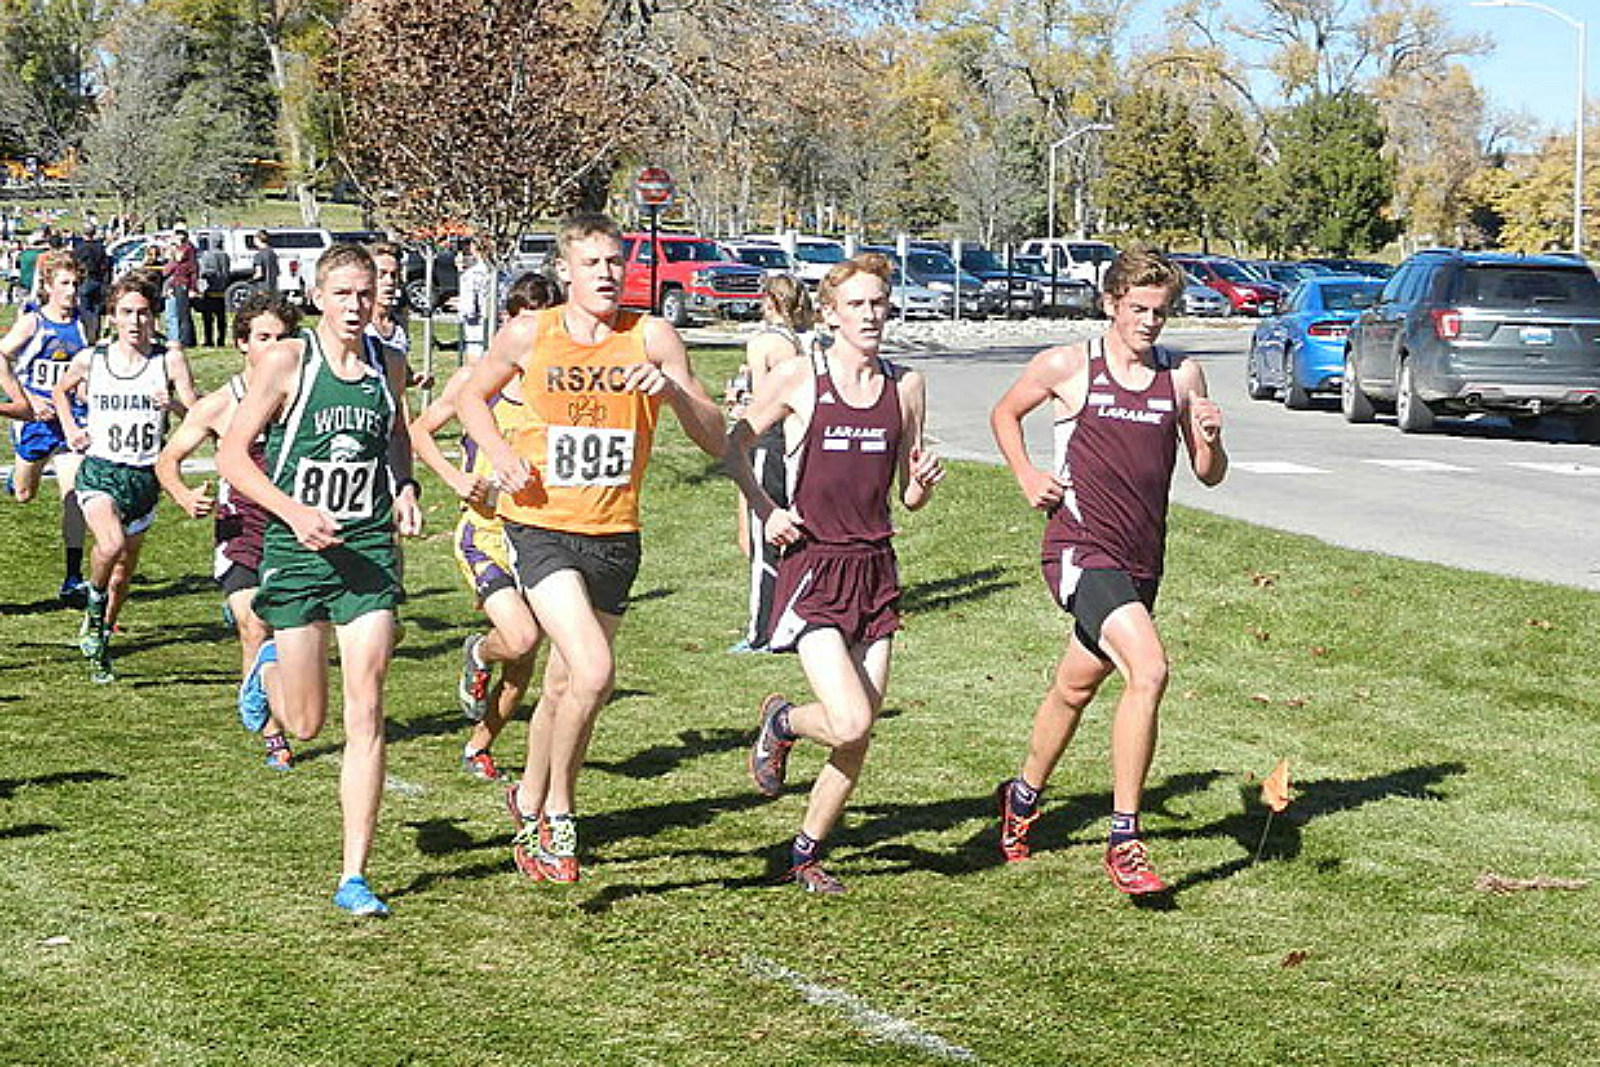 Laramie Cross Country, XC, LHS, running, 2016, state championships